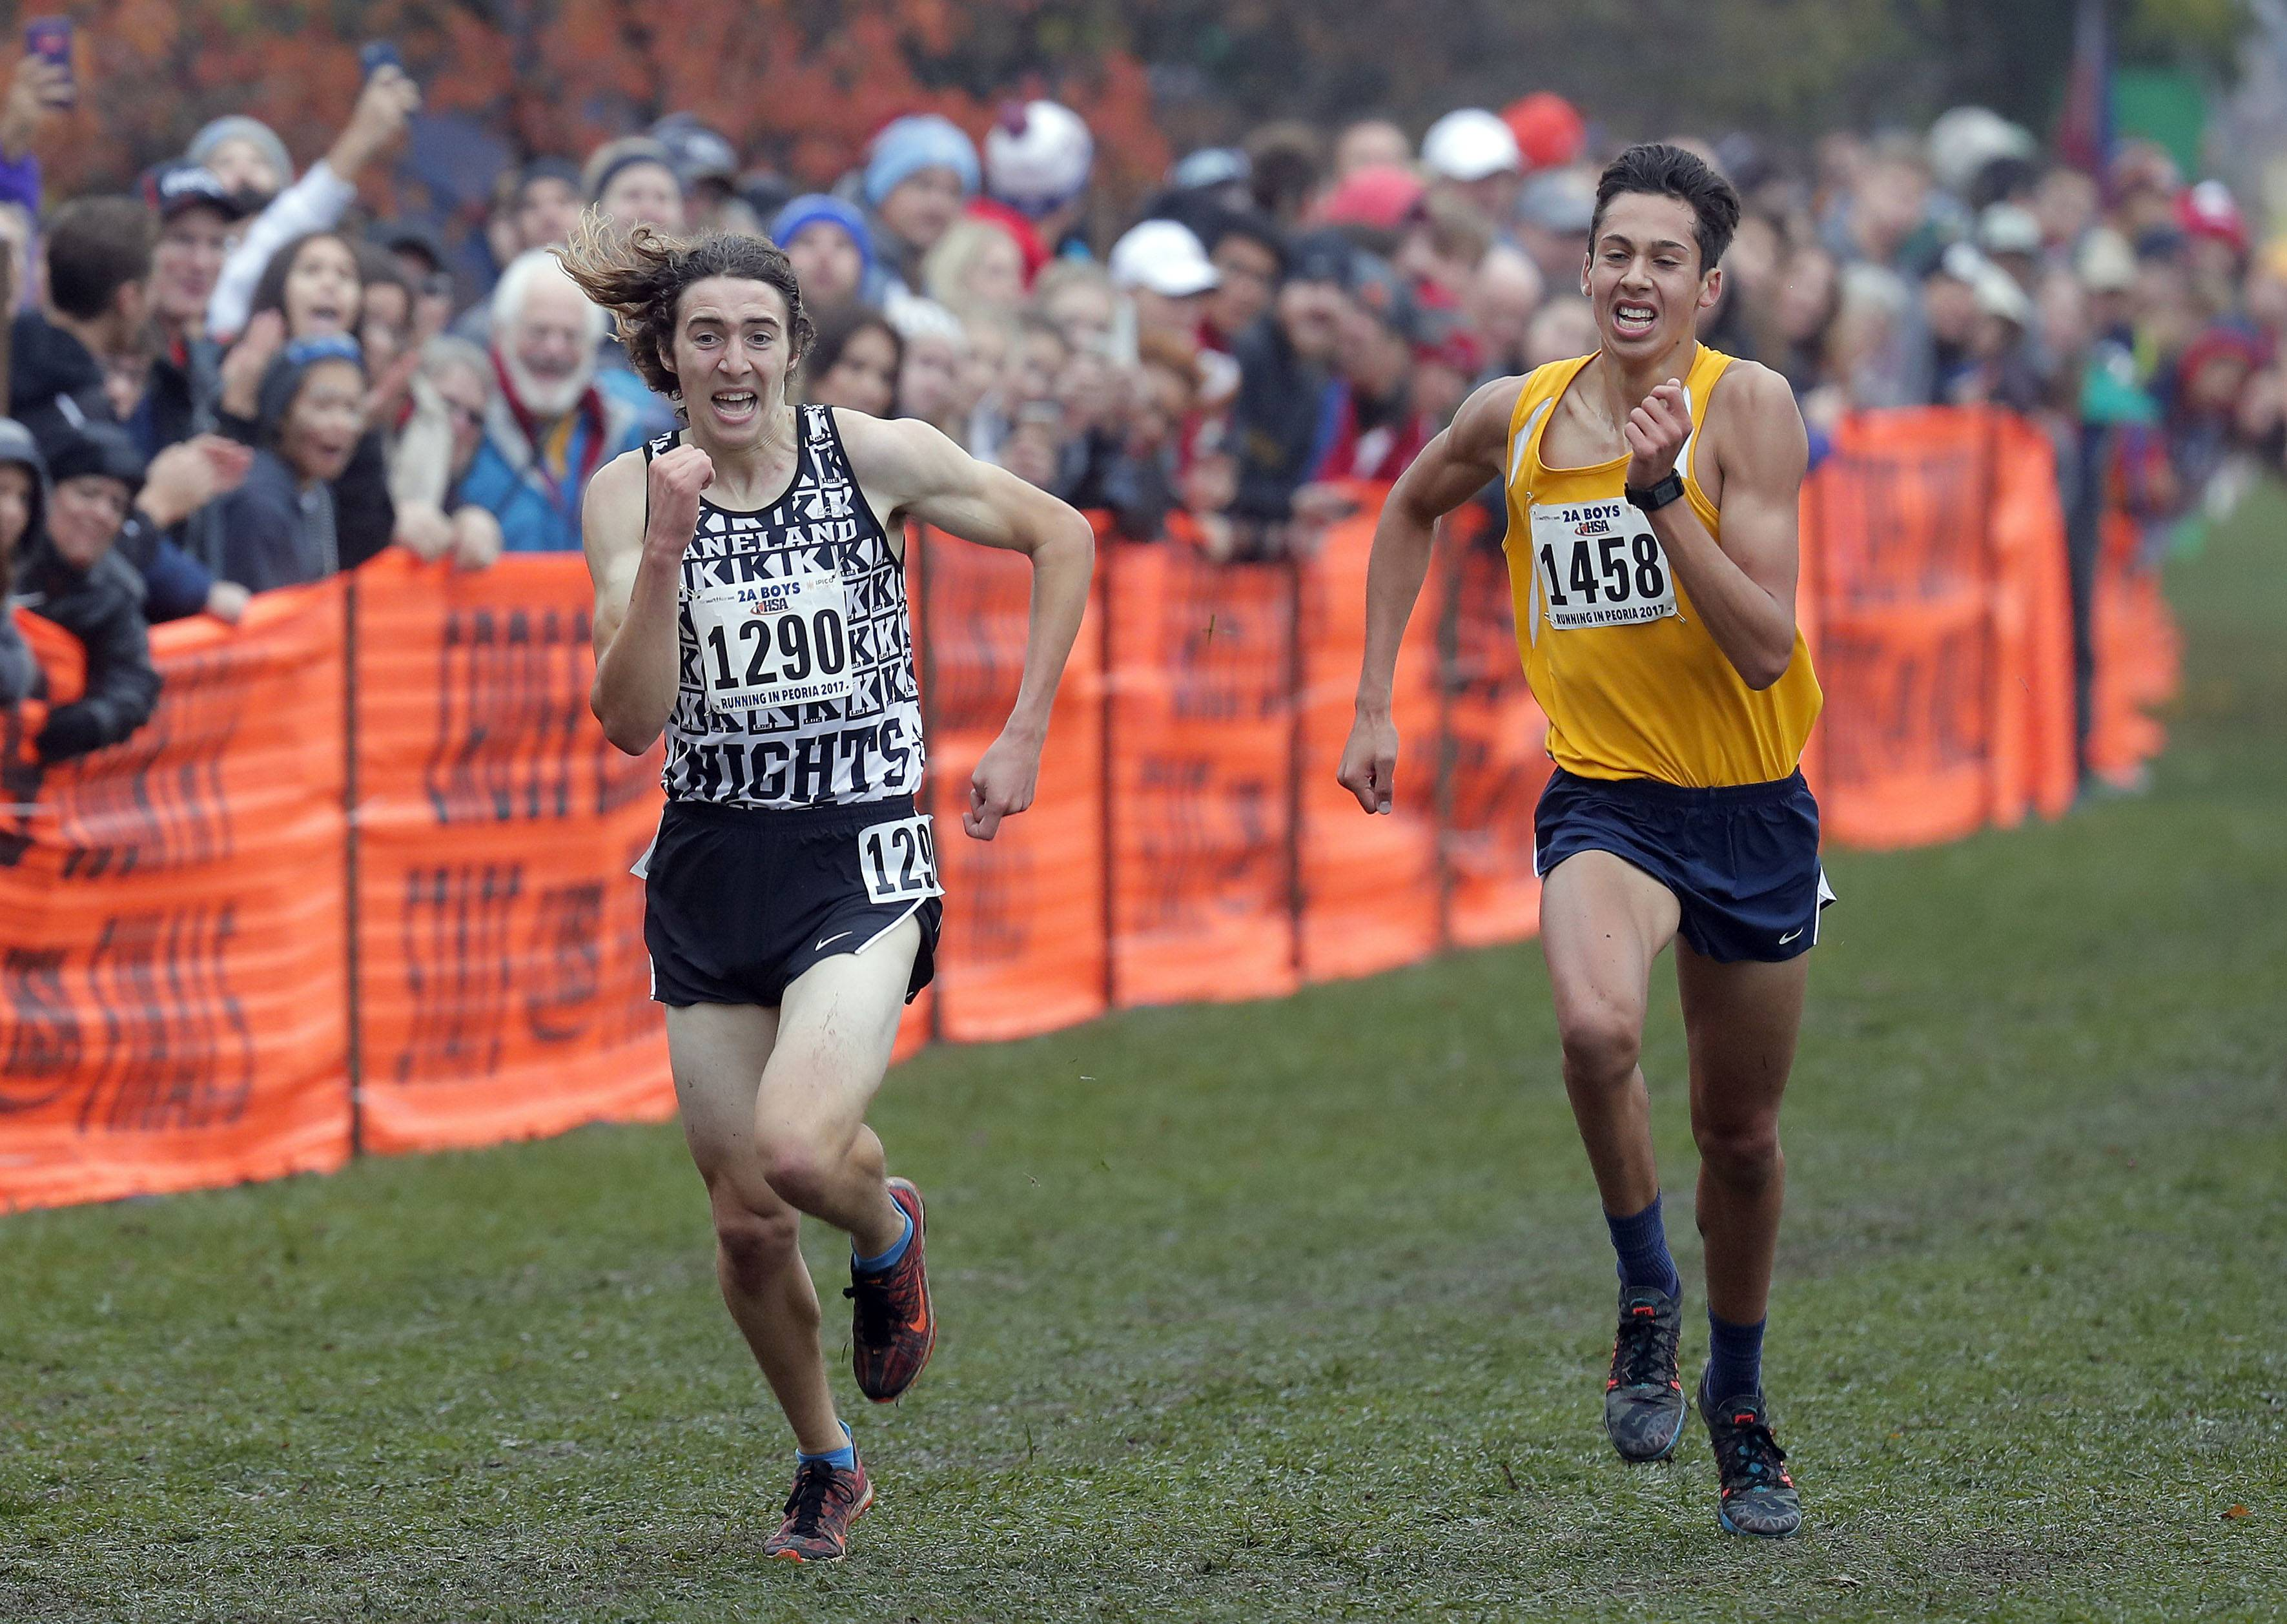 Kaneland's Matthew Richtman (1290) and Sterling's Jacob Gebhardt (1458) power to the finish during the boys Class 2A cross country finals Saturday in Peoria.